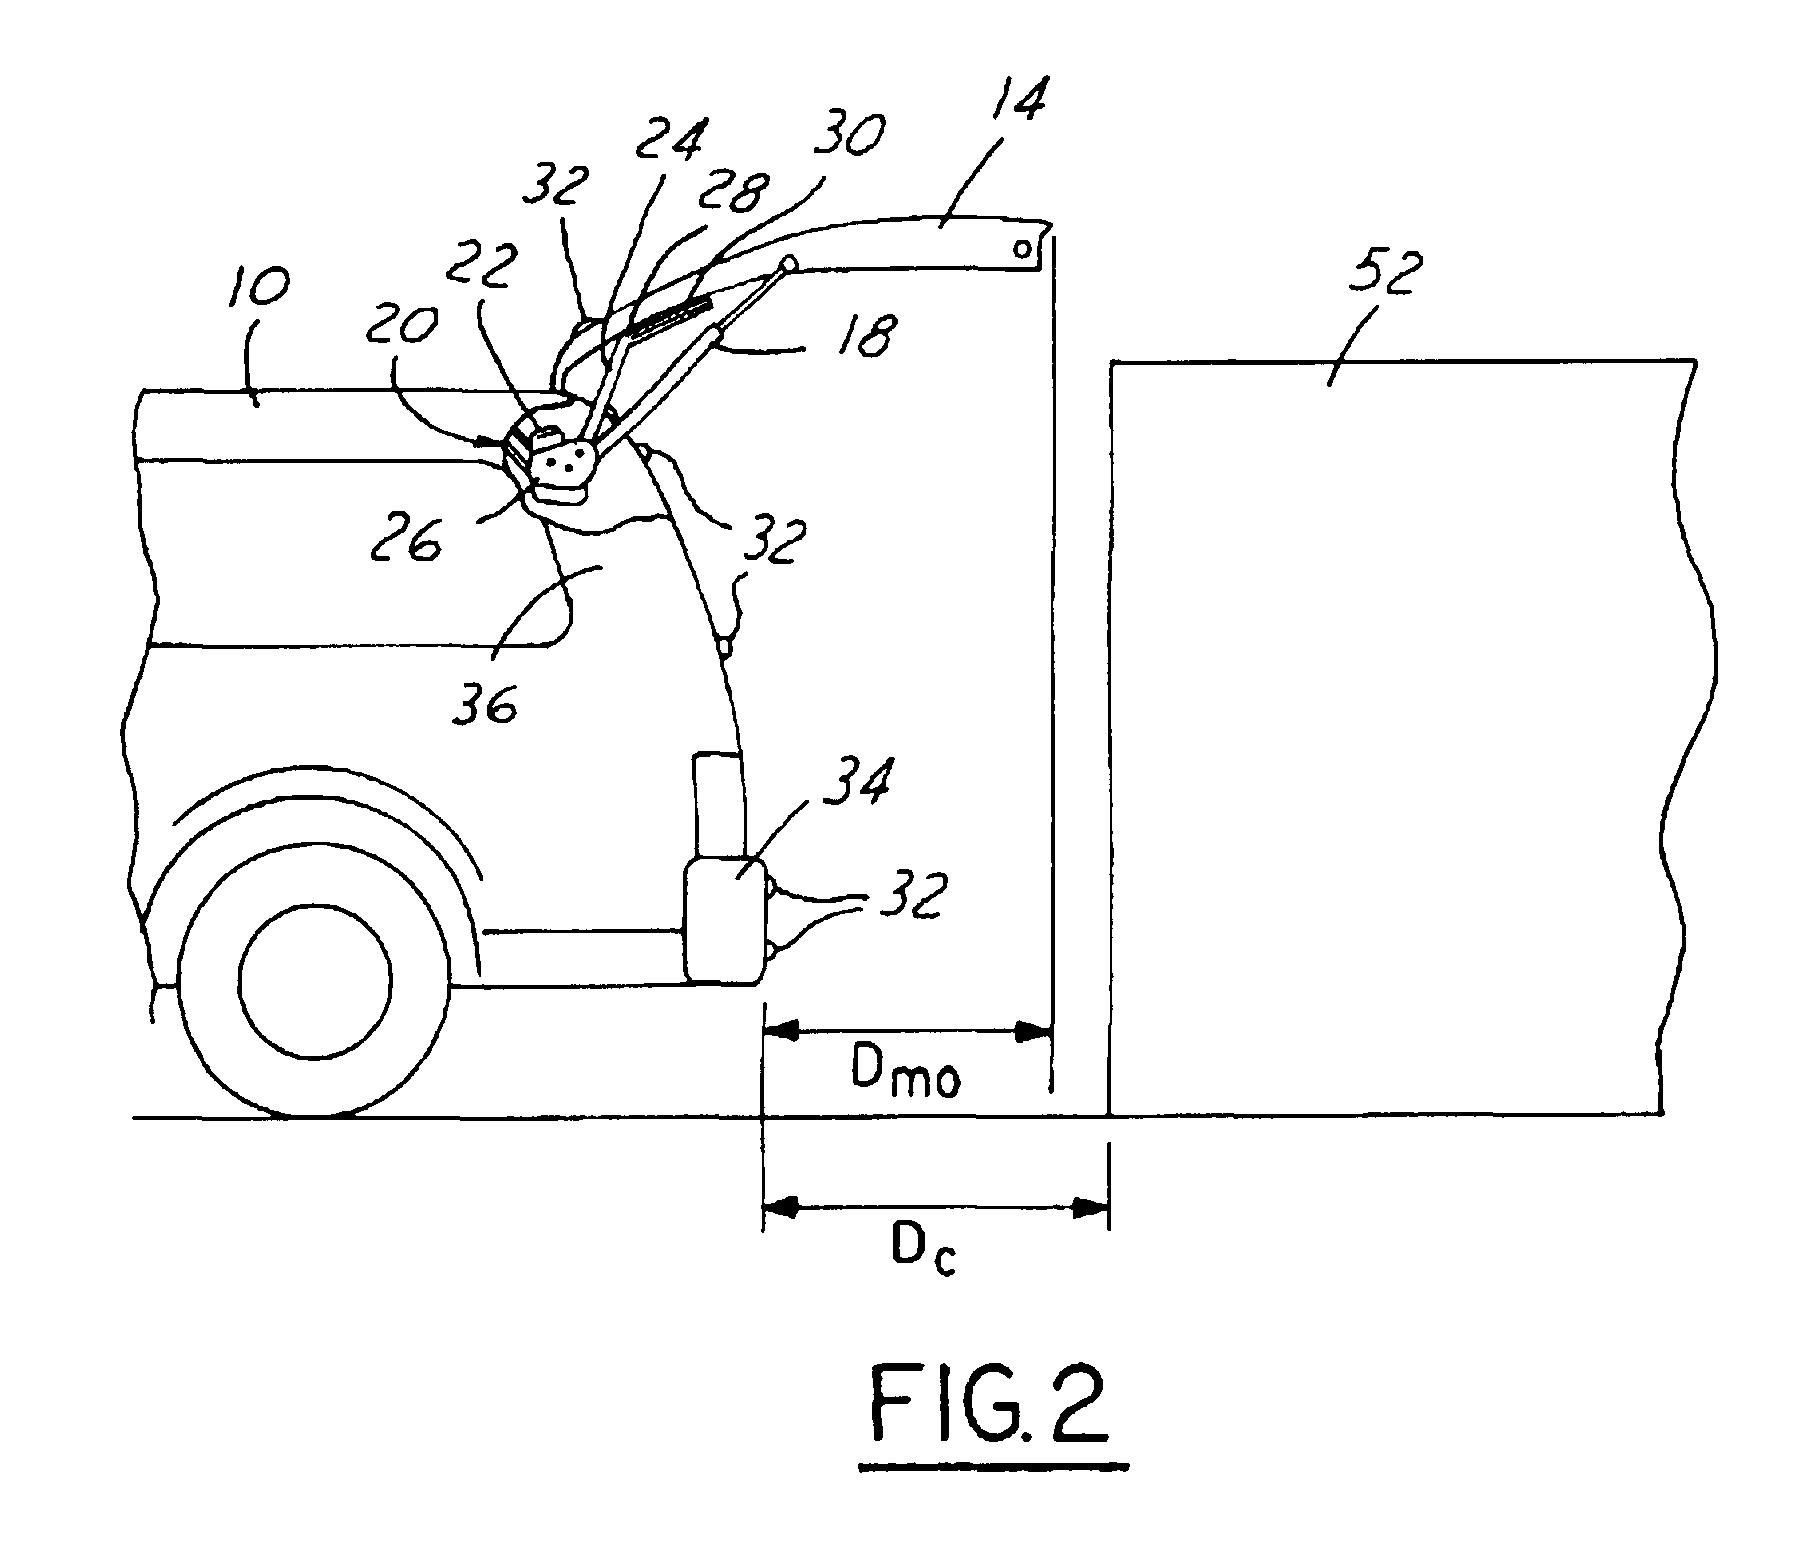 patent us6411054 - obstruction detection system for power liftgate